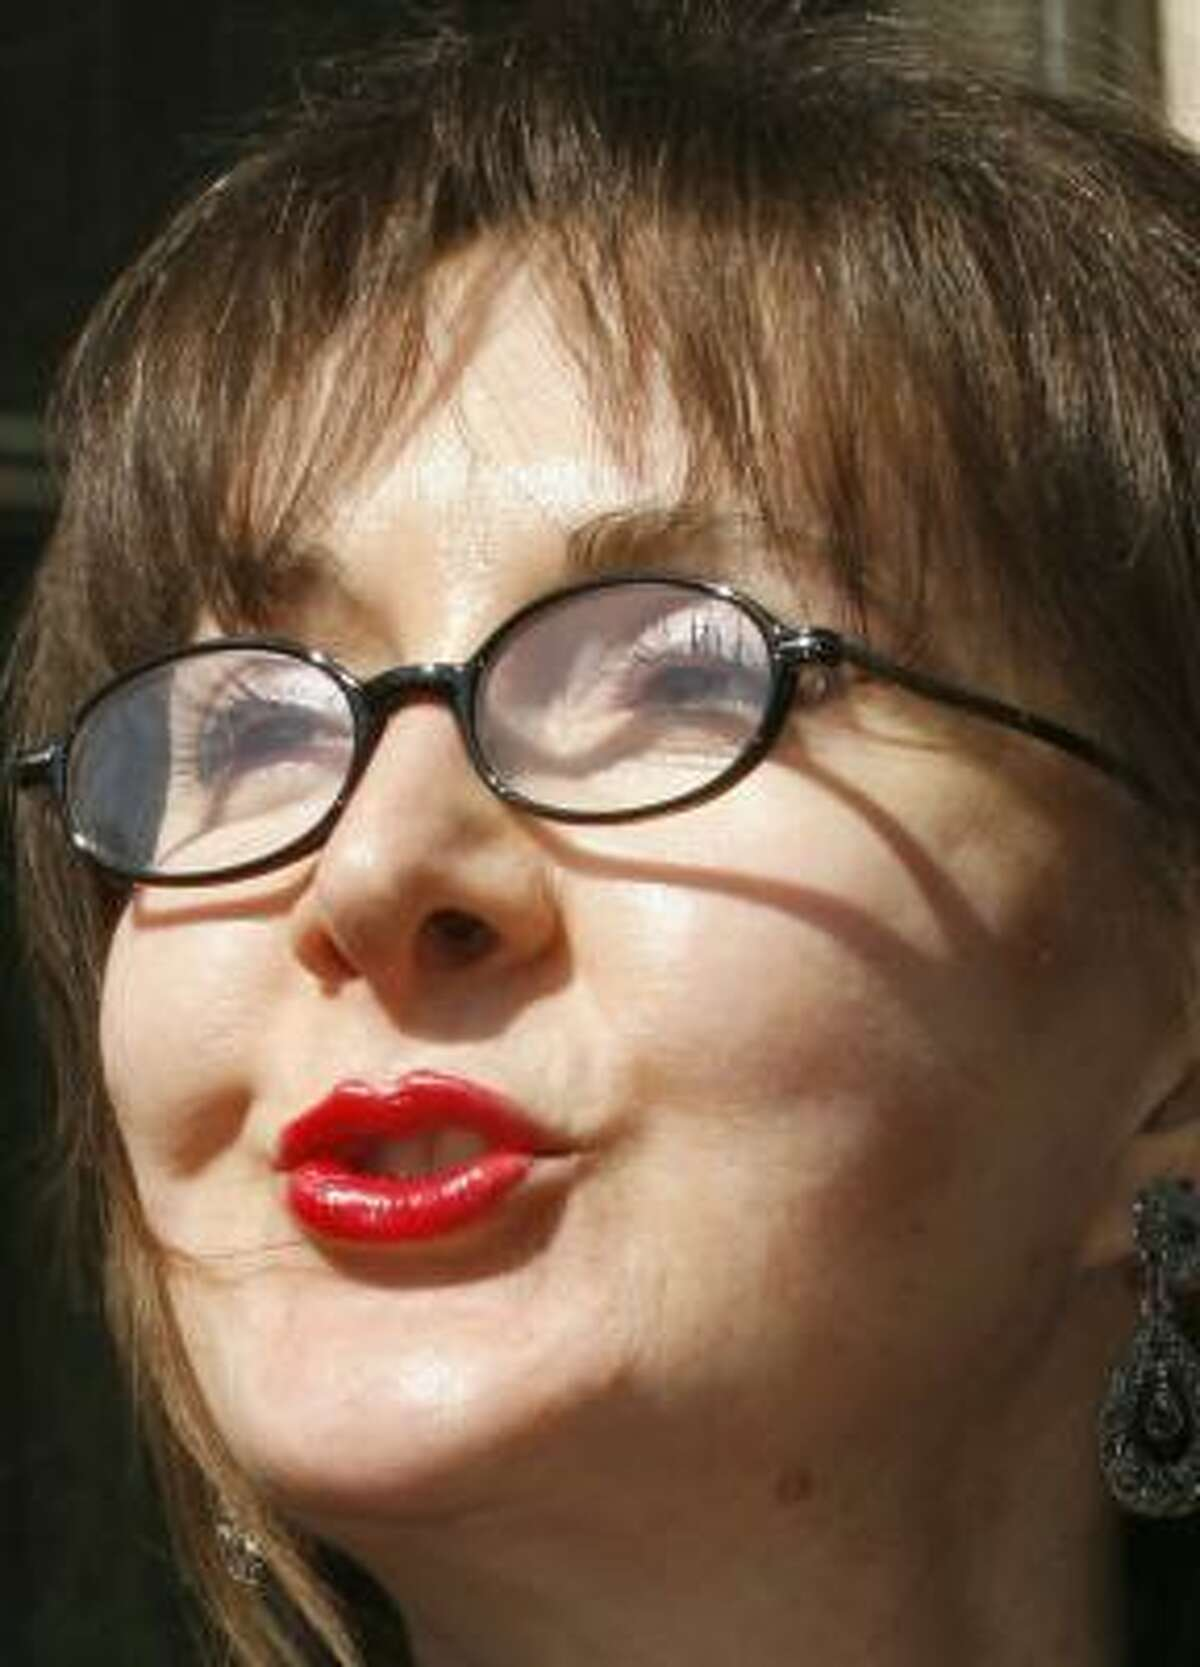 Deborah Jeane Palfrey is accused of running an illegal escort service in the nation's capital.